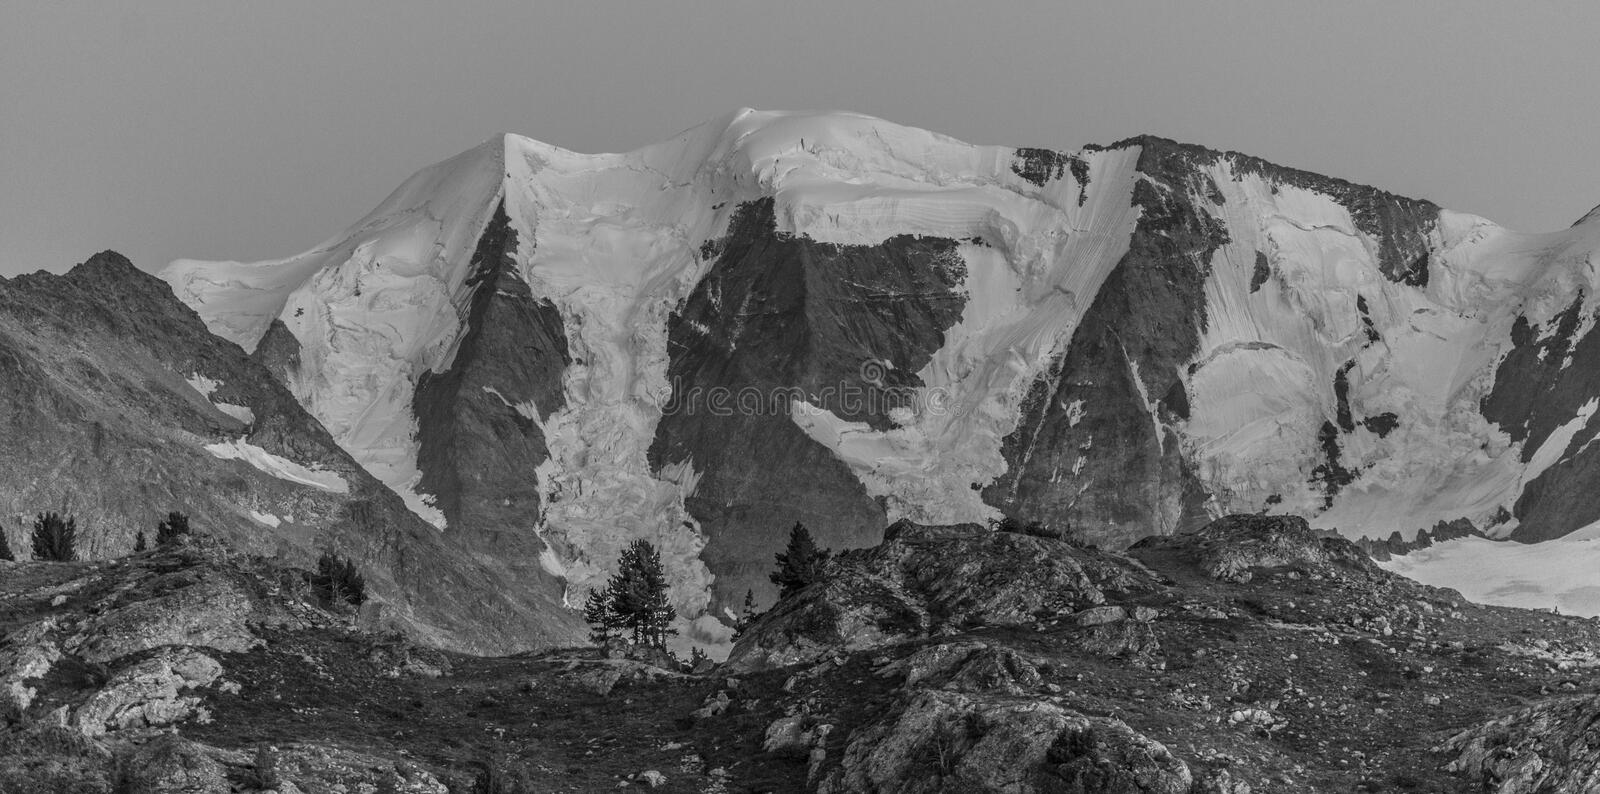 Panorama of high mountains black and white royalty free stock photos